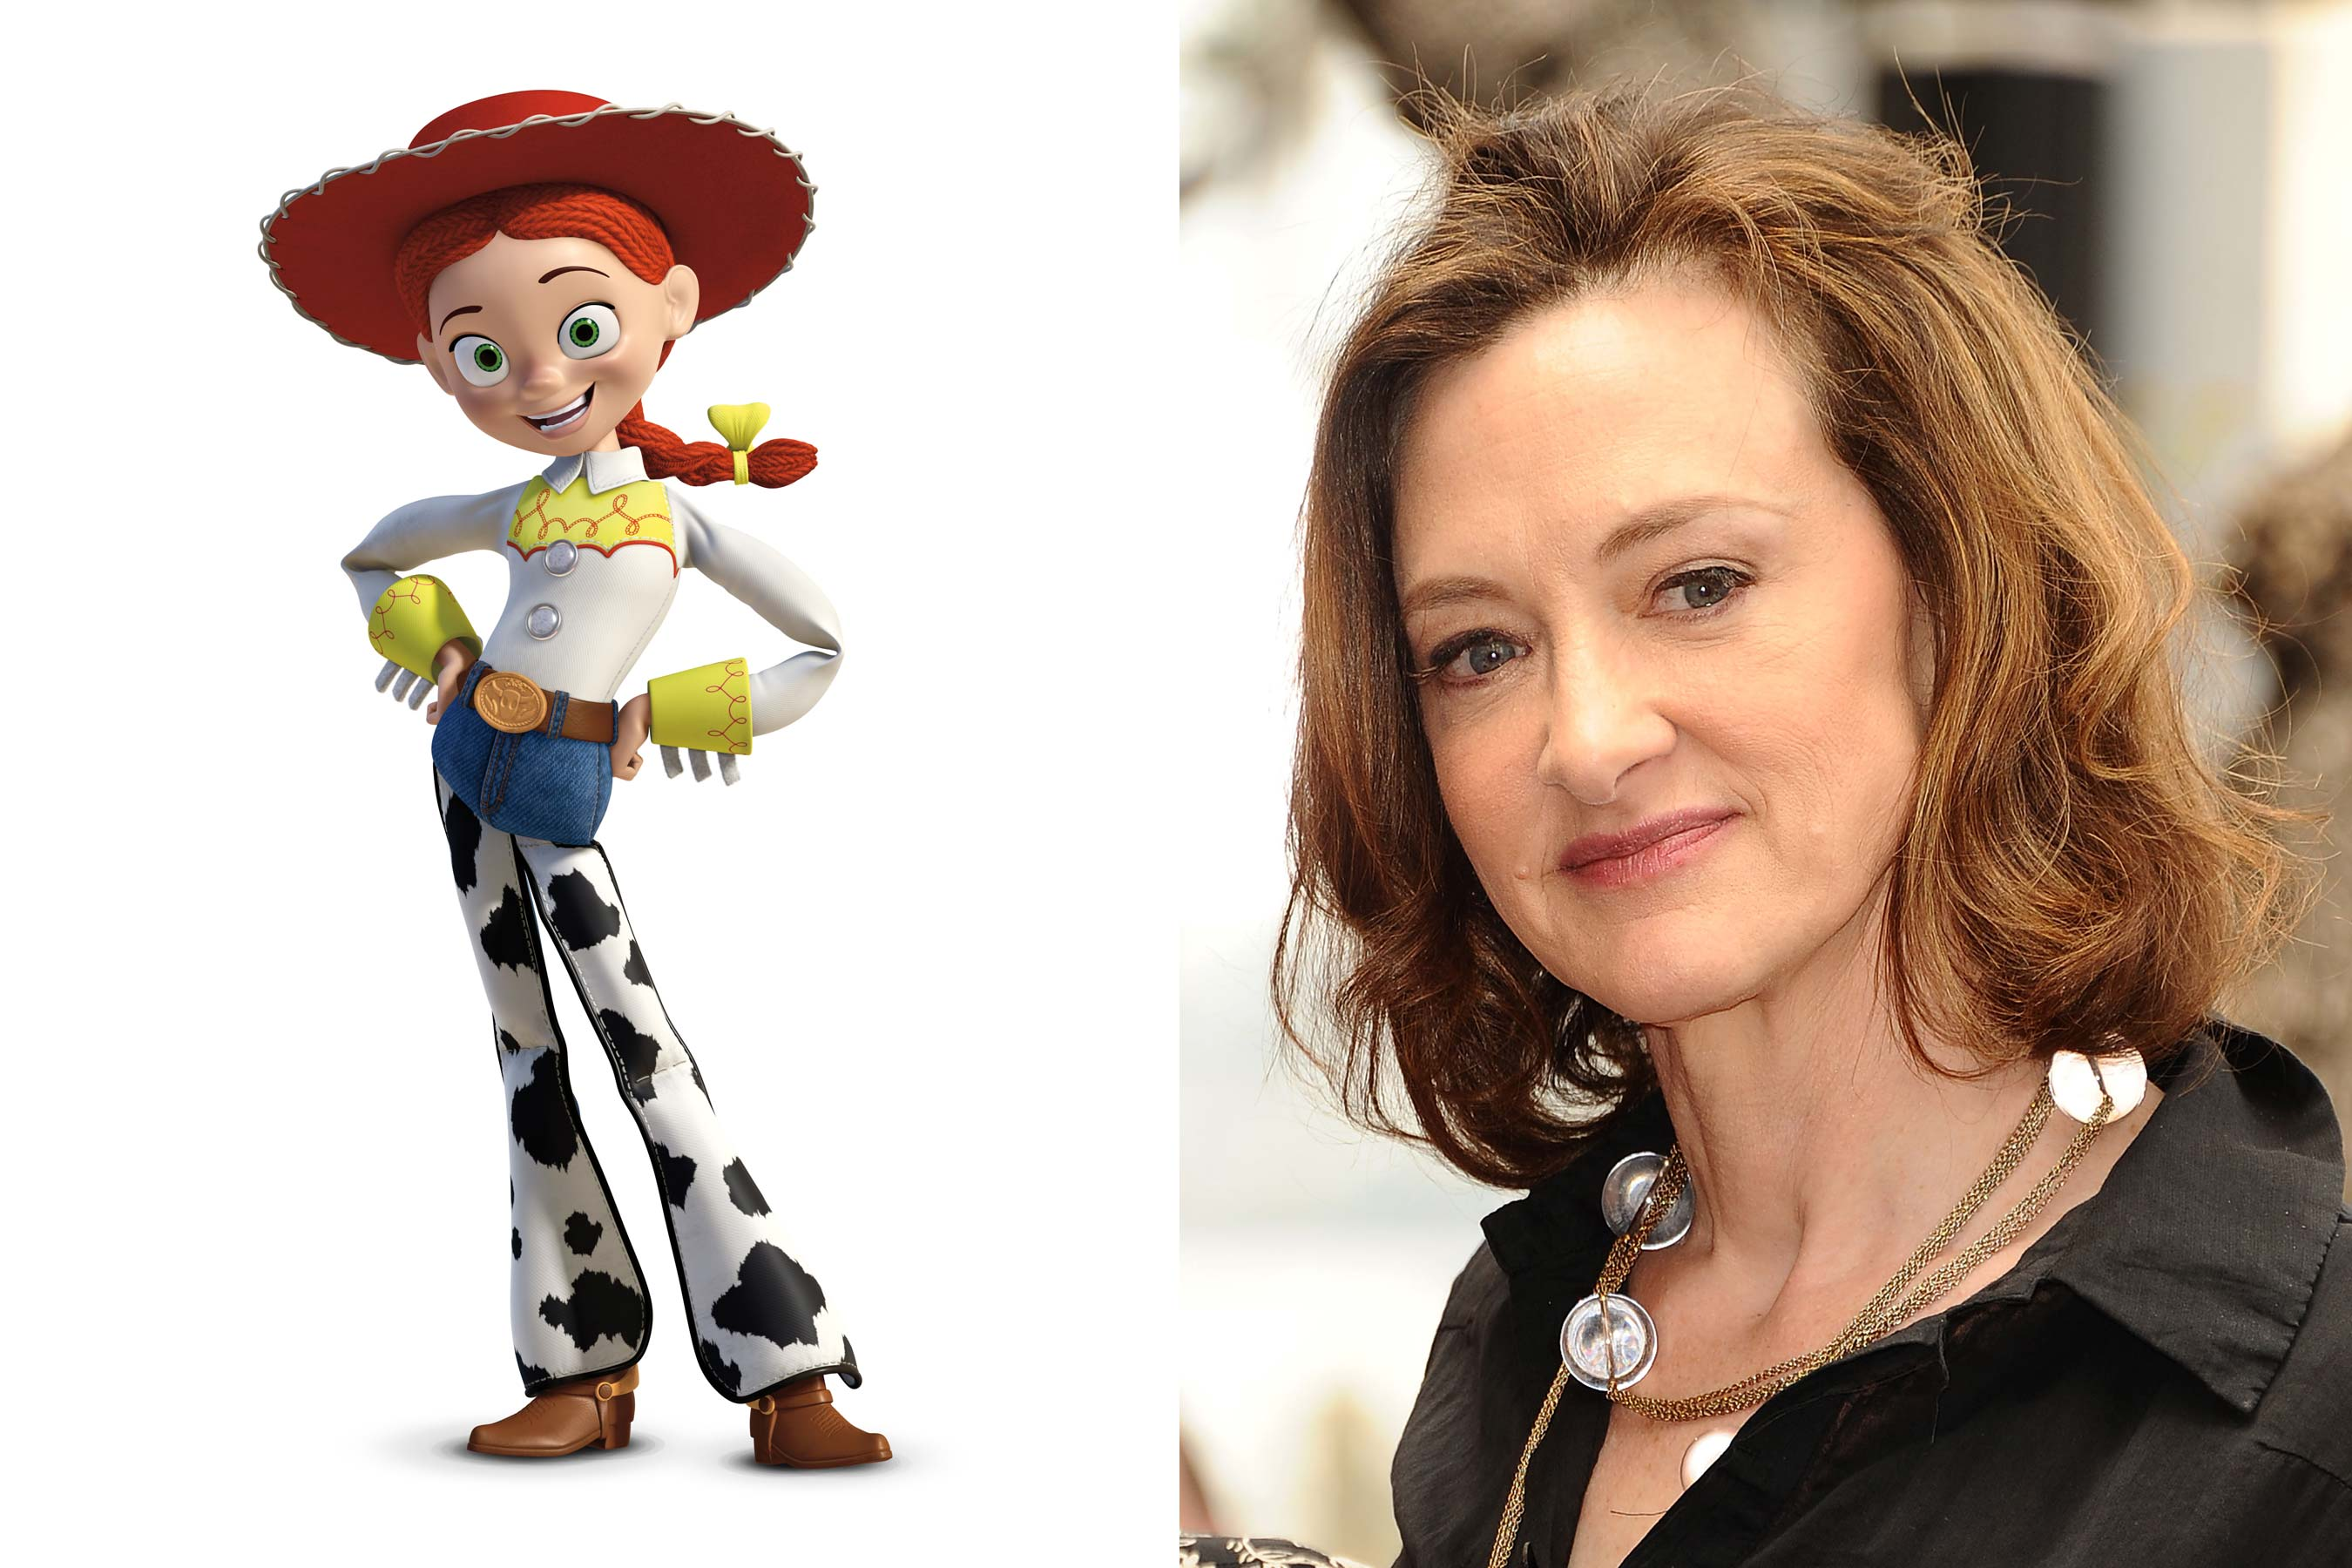 <strong>Jessie - Joan Cusack (Toy Story 2-3)</strong>